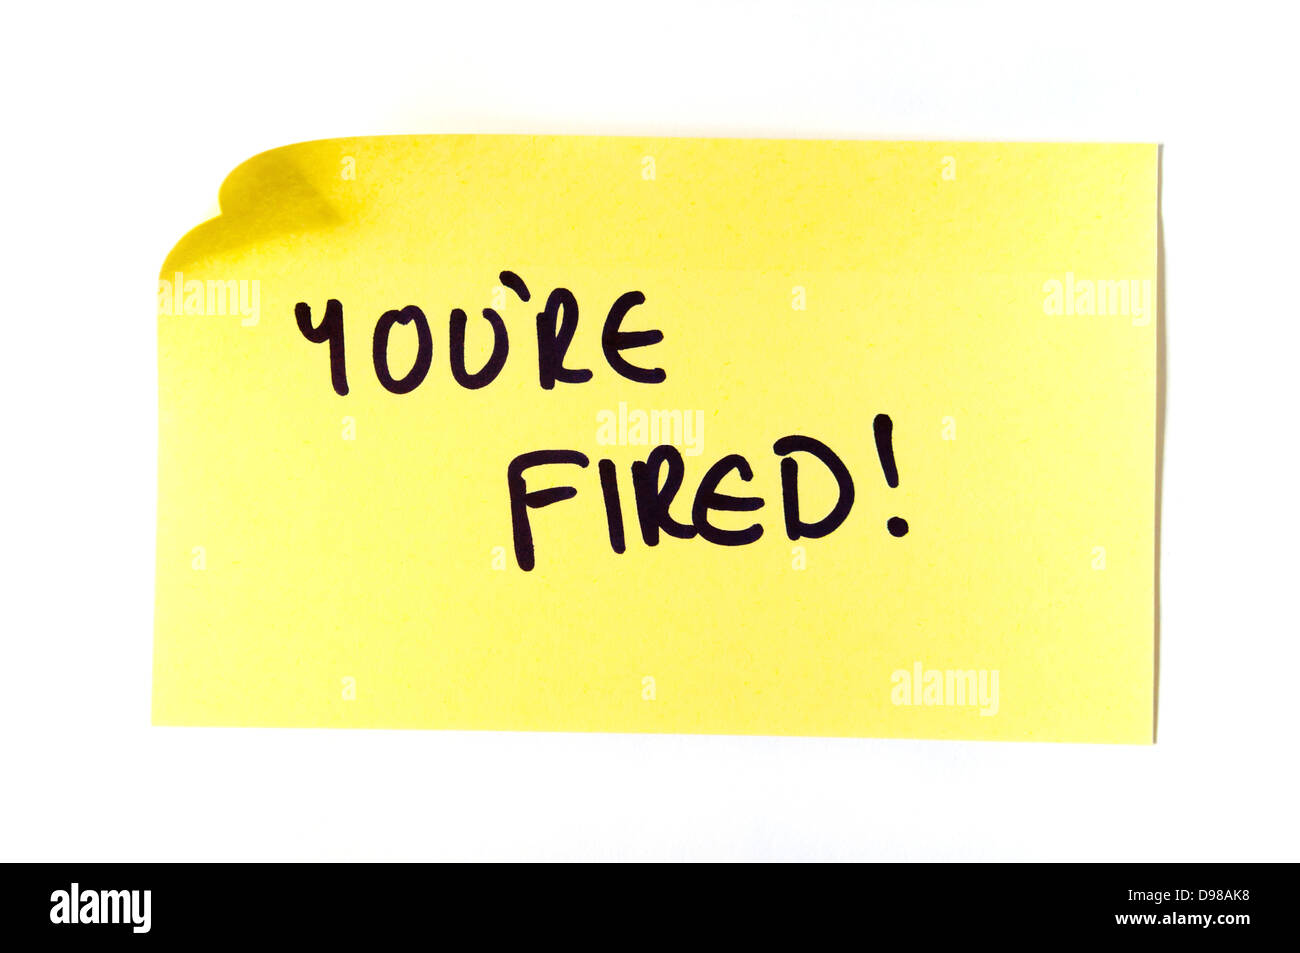 You're Fired! Written on a yellow post it note - Stock Image